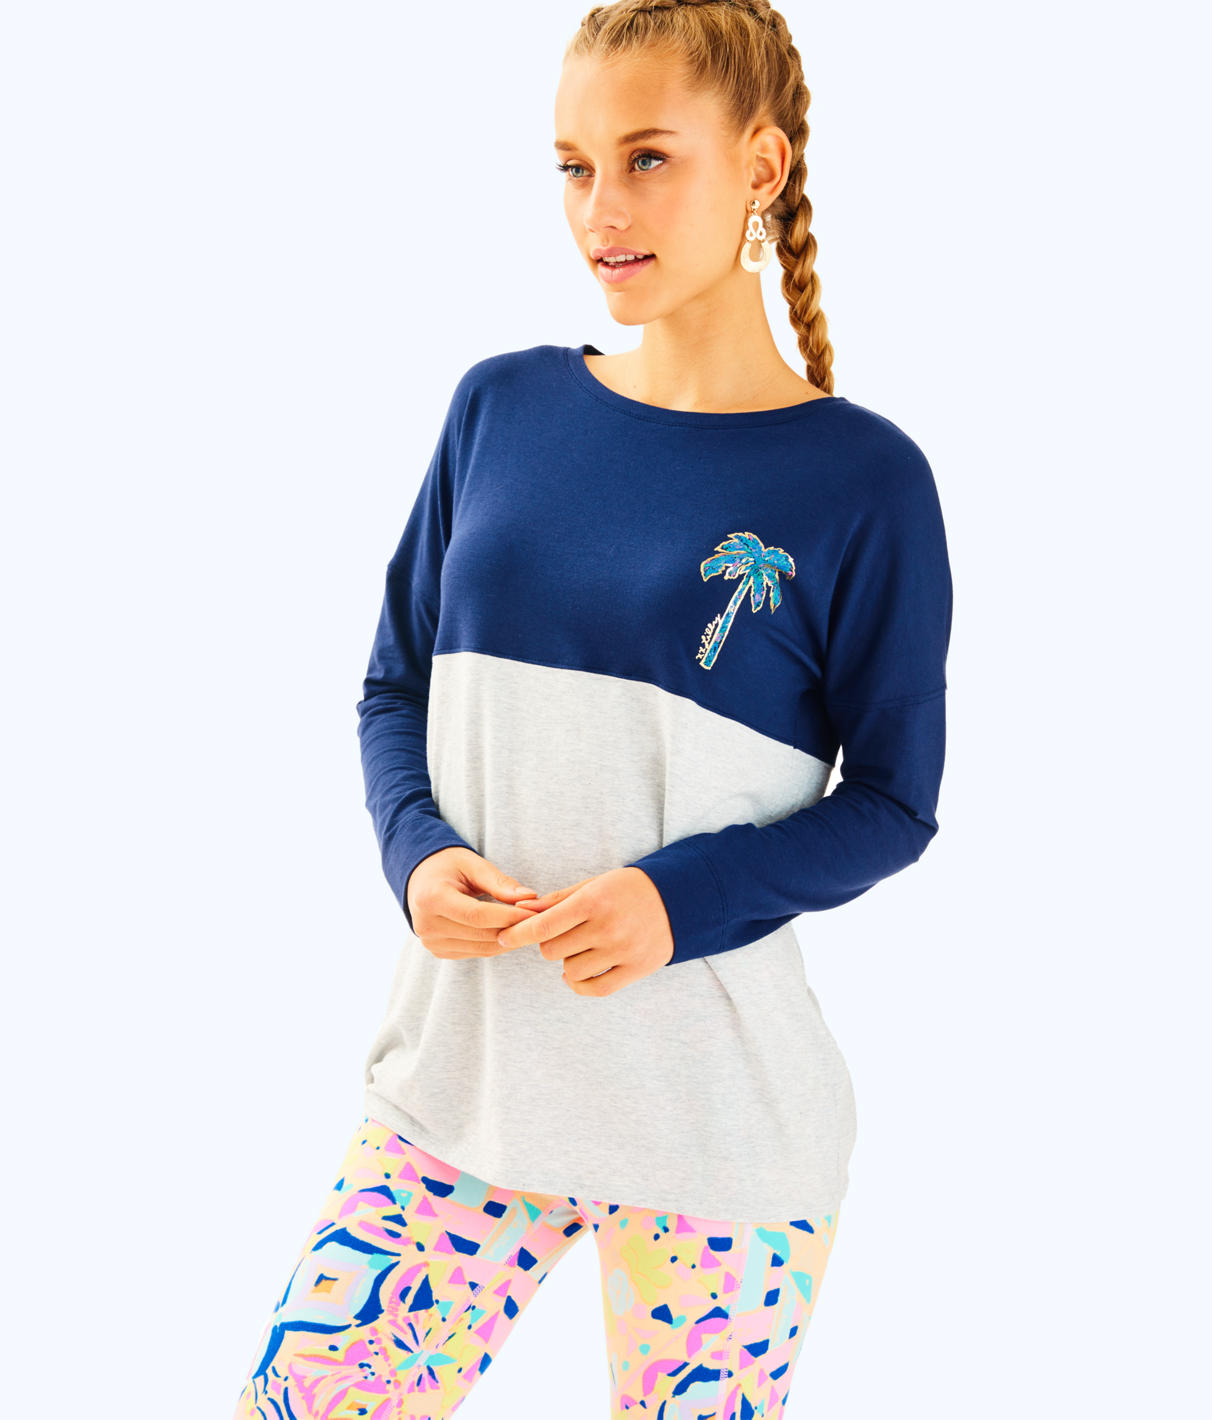 Lilly Pulitzer Lilly Pulitzer Womens Finn Long Sleeved Tee